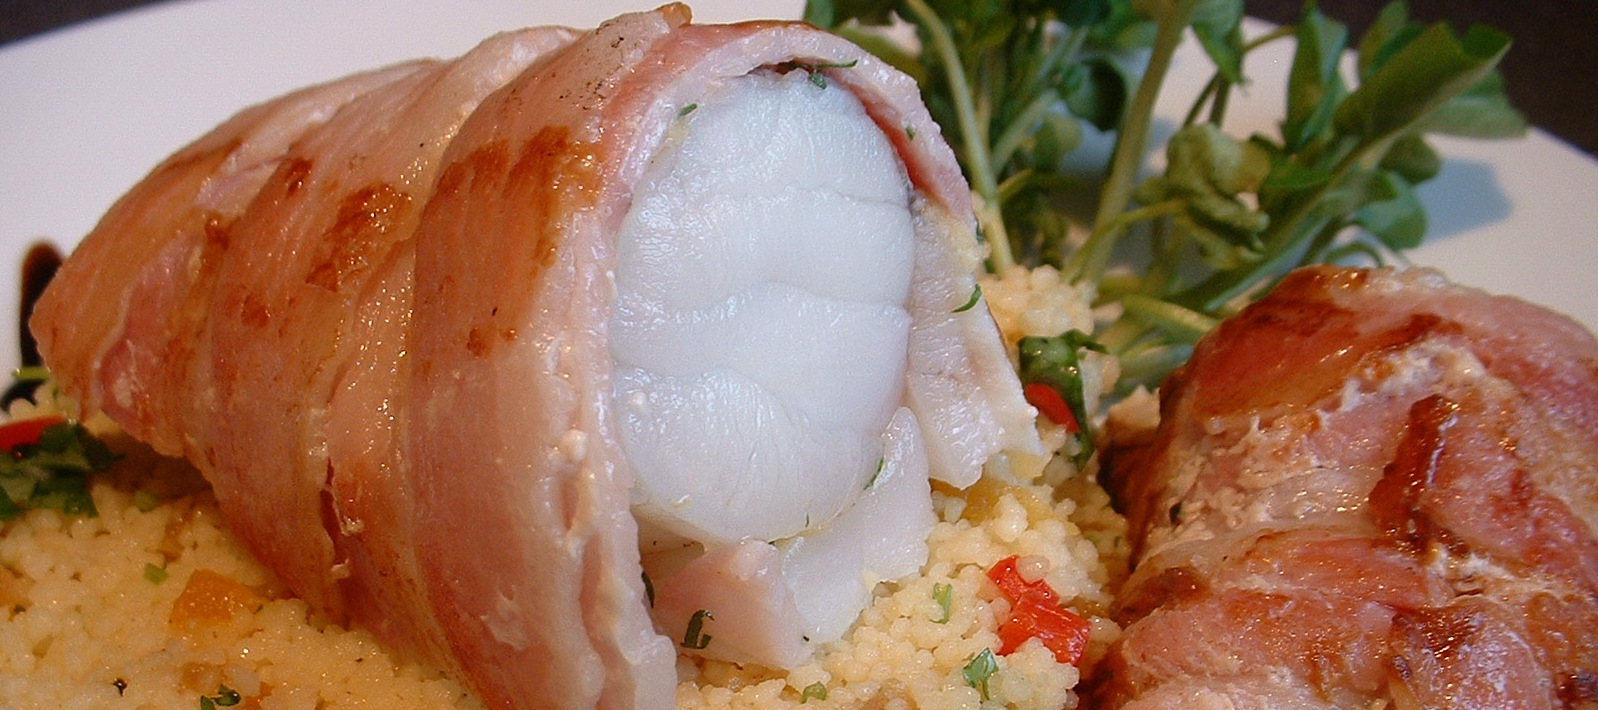 Monkfish fillets recipe monkfish recipe monkfish for Monk fish recipes